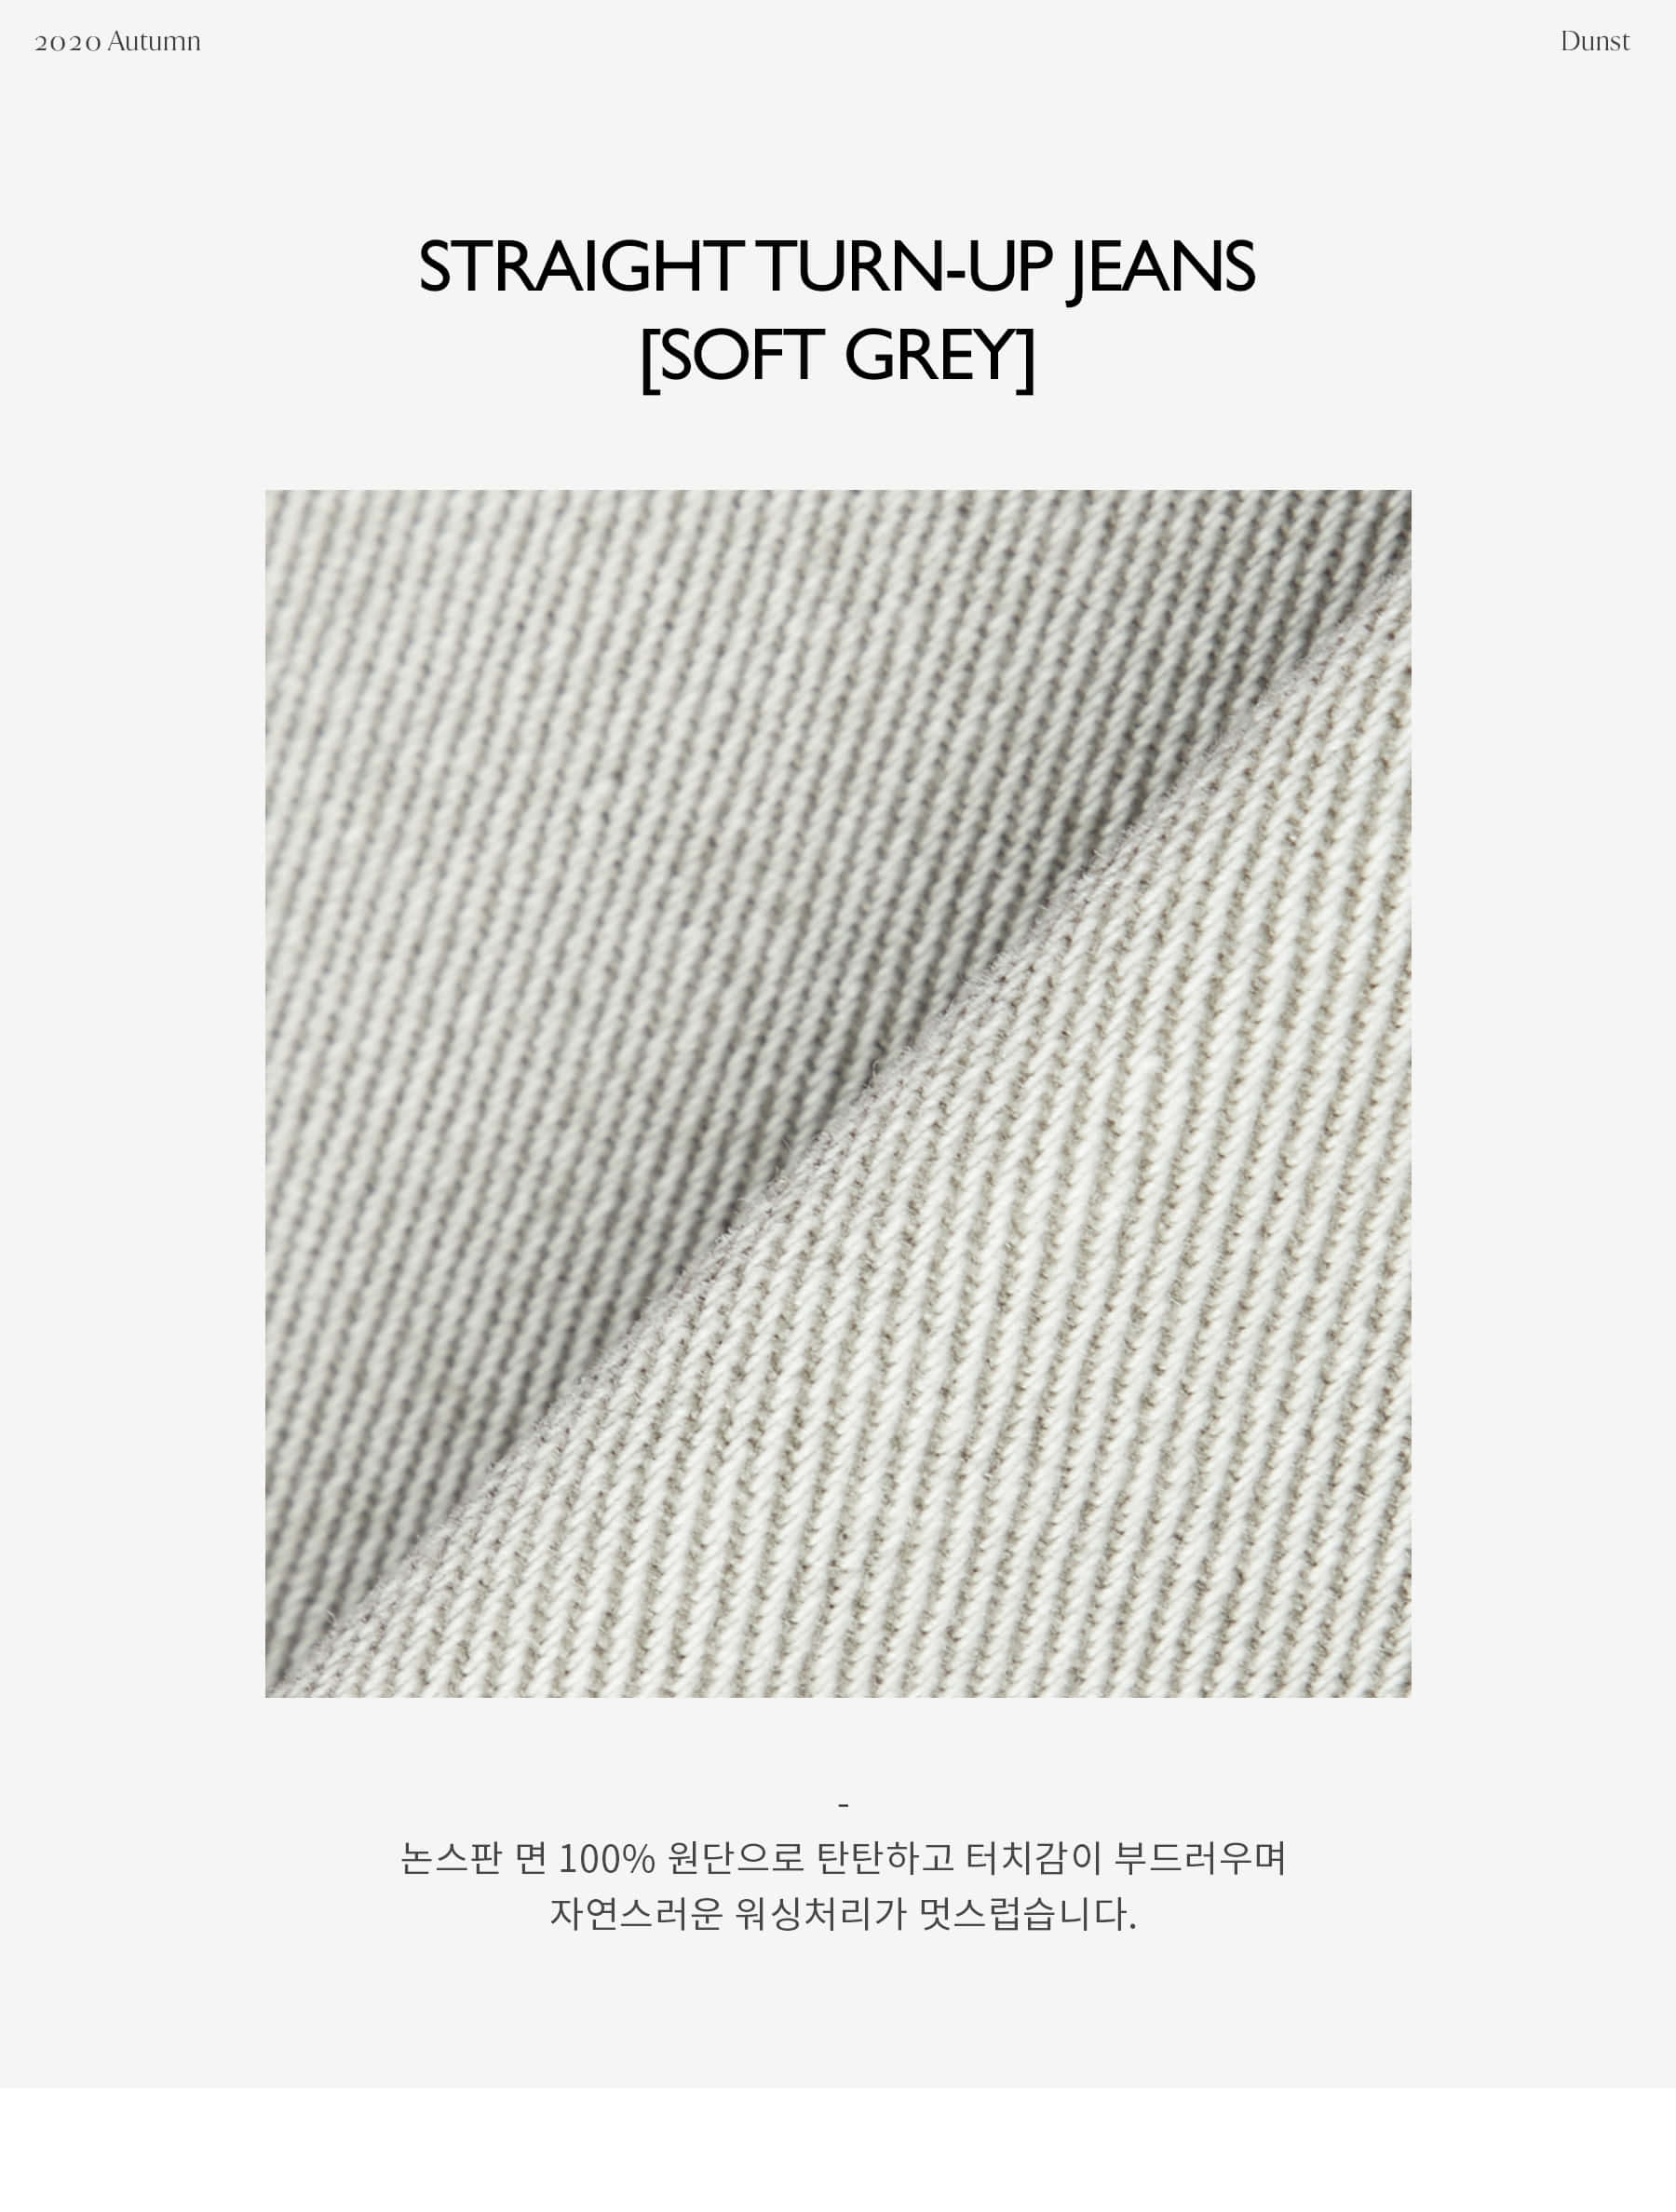 던스트 포 우먼(DUNST FOR WOMEN) STRAIGHT TURN-UP JEANS SOFT GREY_UDPA0F205G2